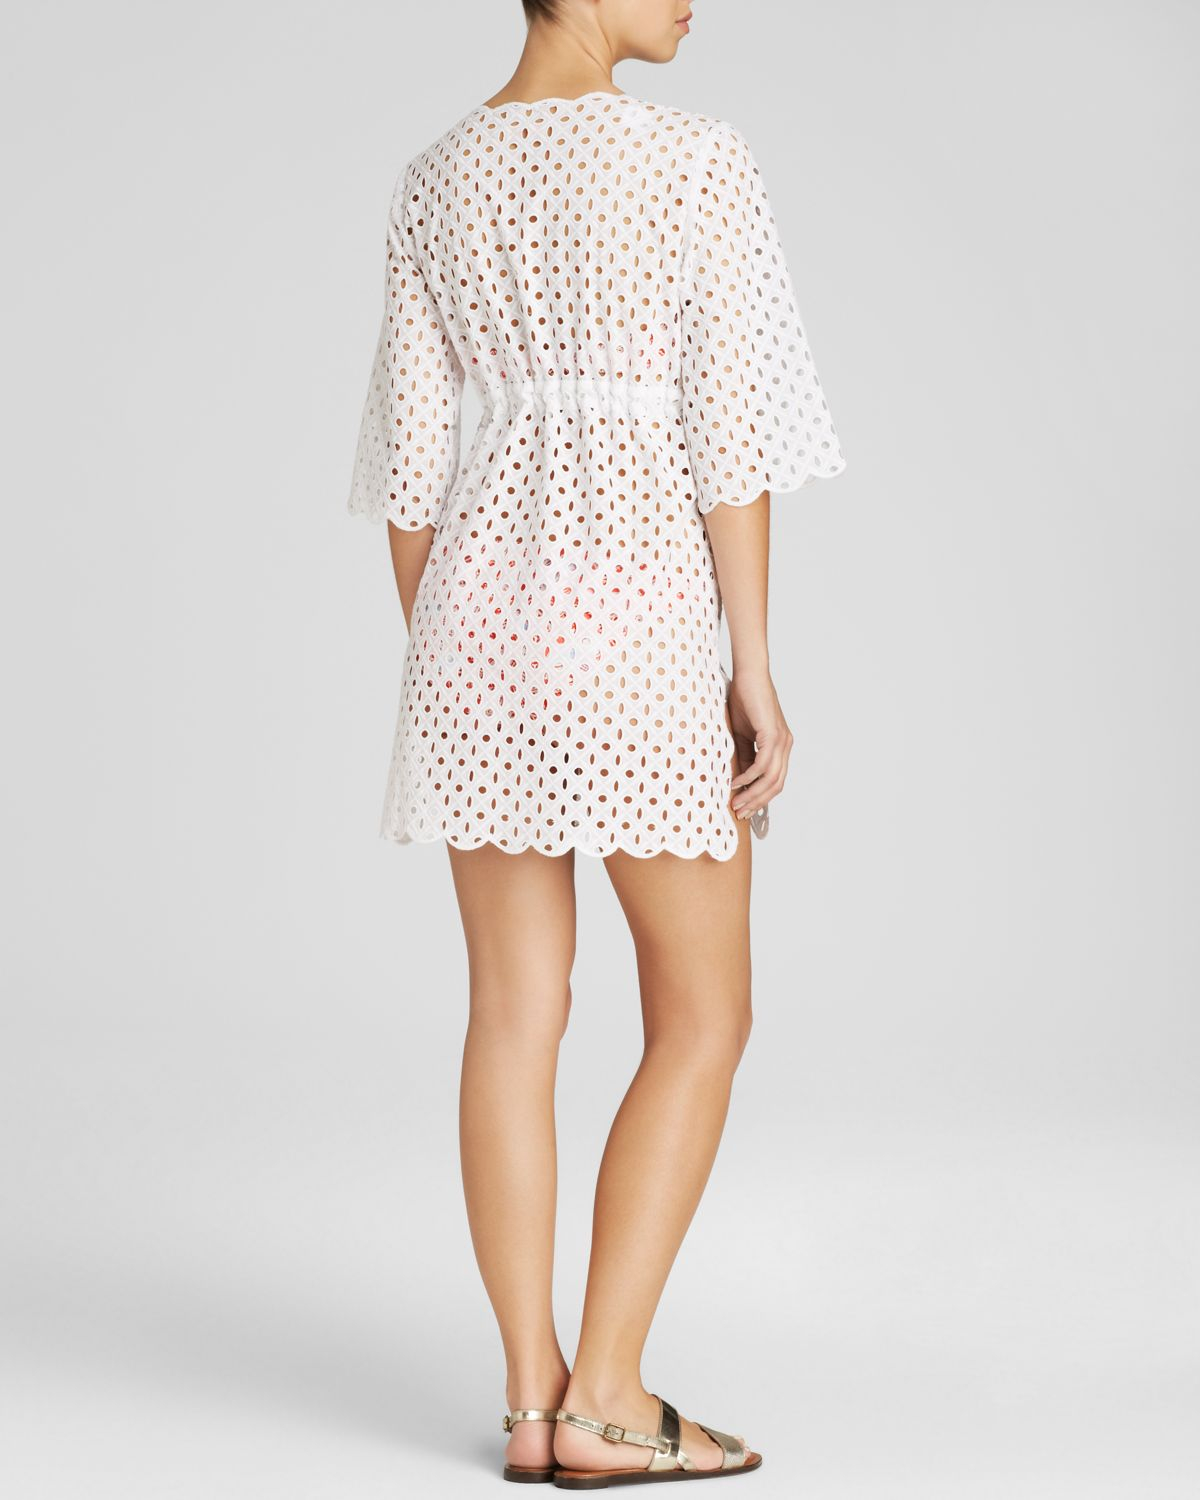 Tory burch broiderie eyelet swim cover up in white lyst for Tory burch fashion island